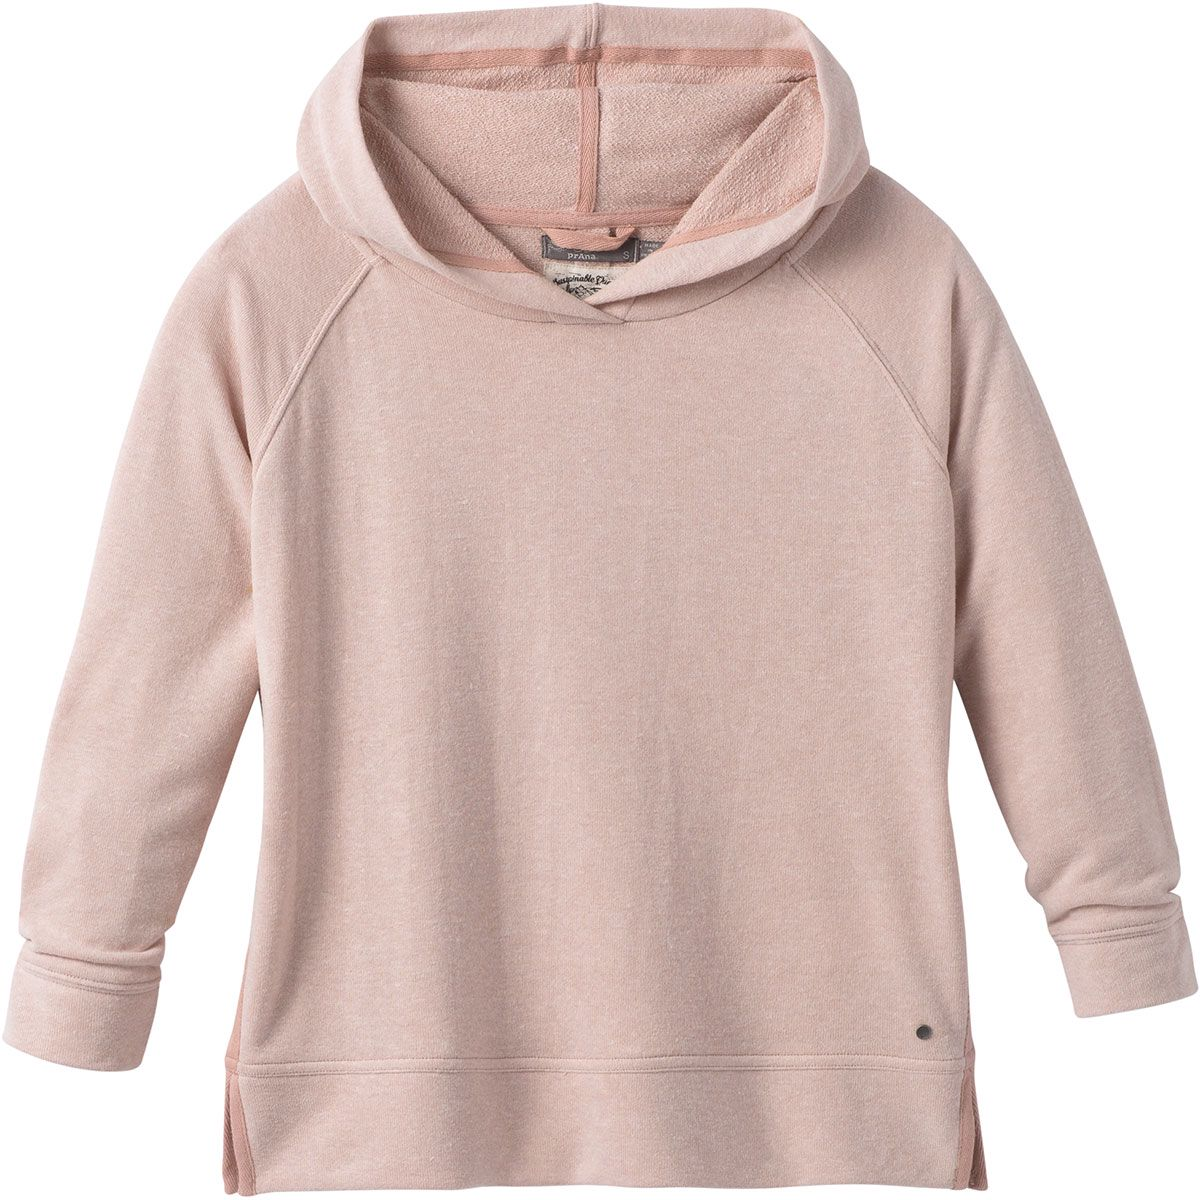 Prana sweater